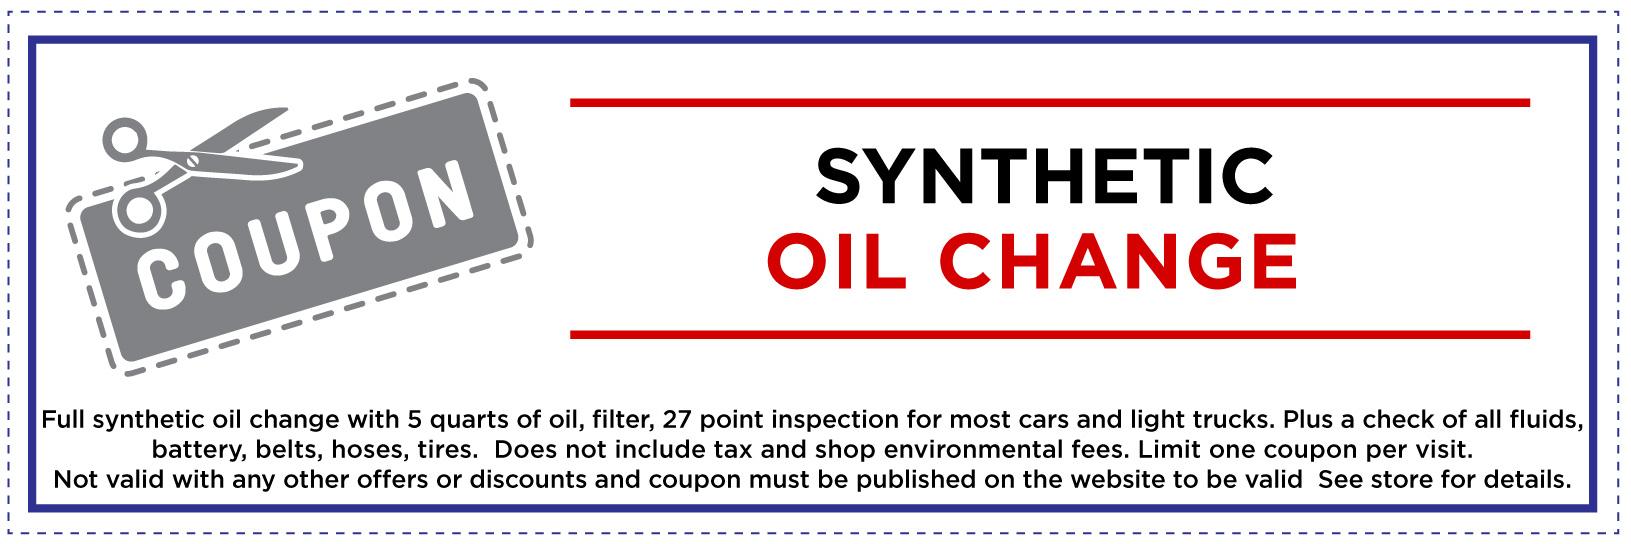 syntheticoilchange